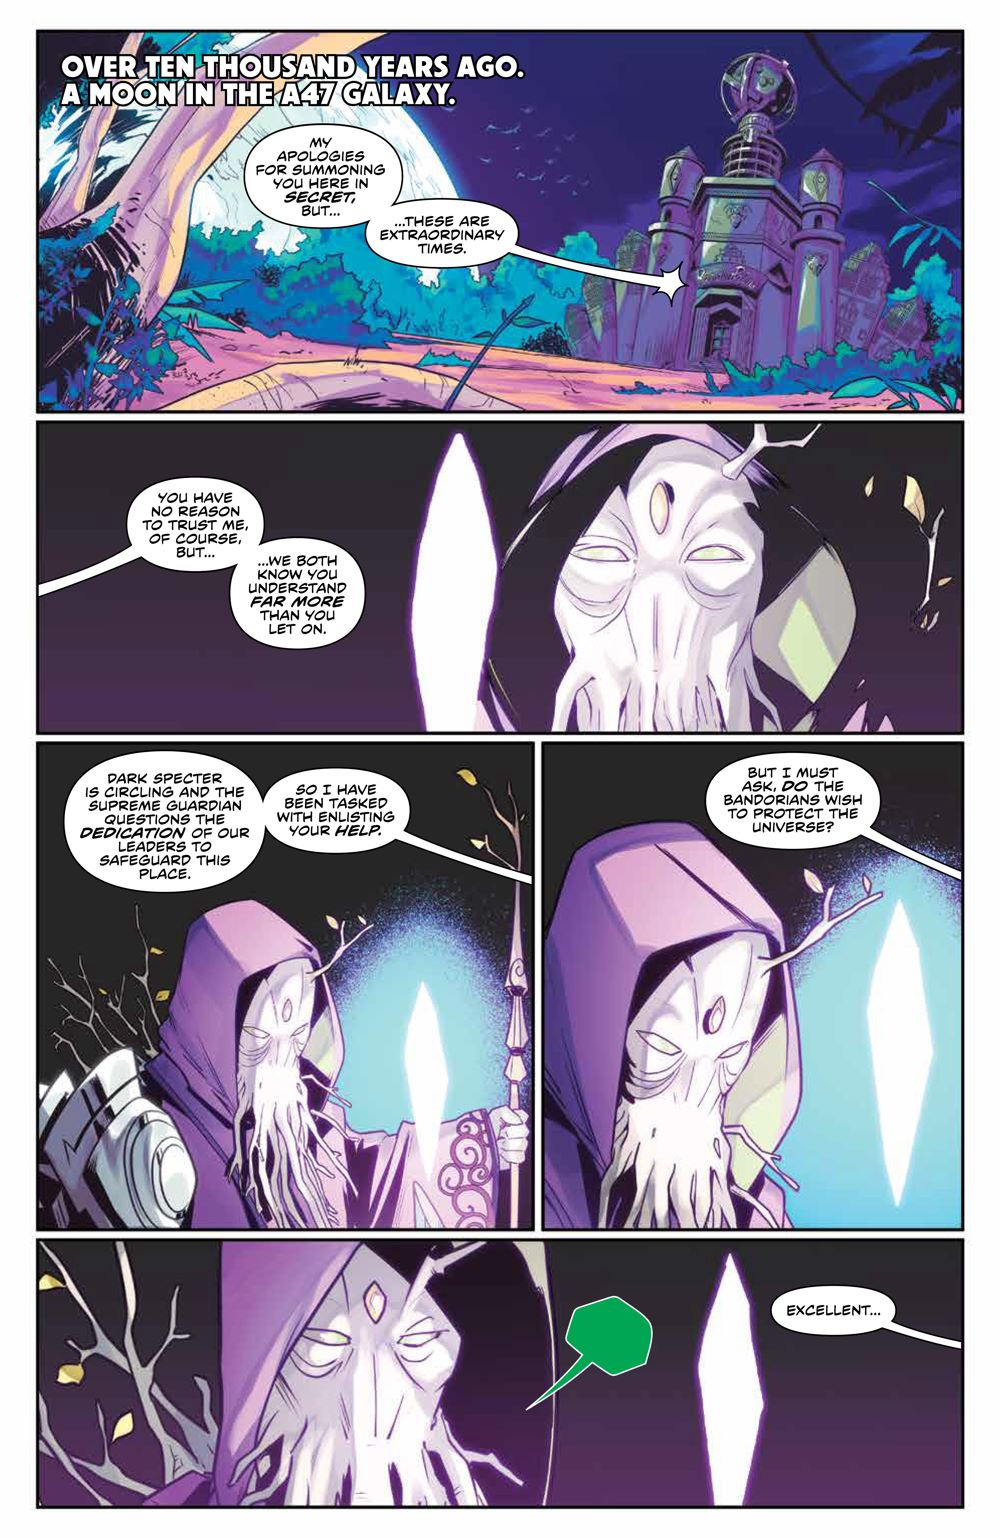 Mighty_Morphin_009_PRESS_3 ComicList Previews: MIGHTY MORPHIN #9